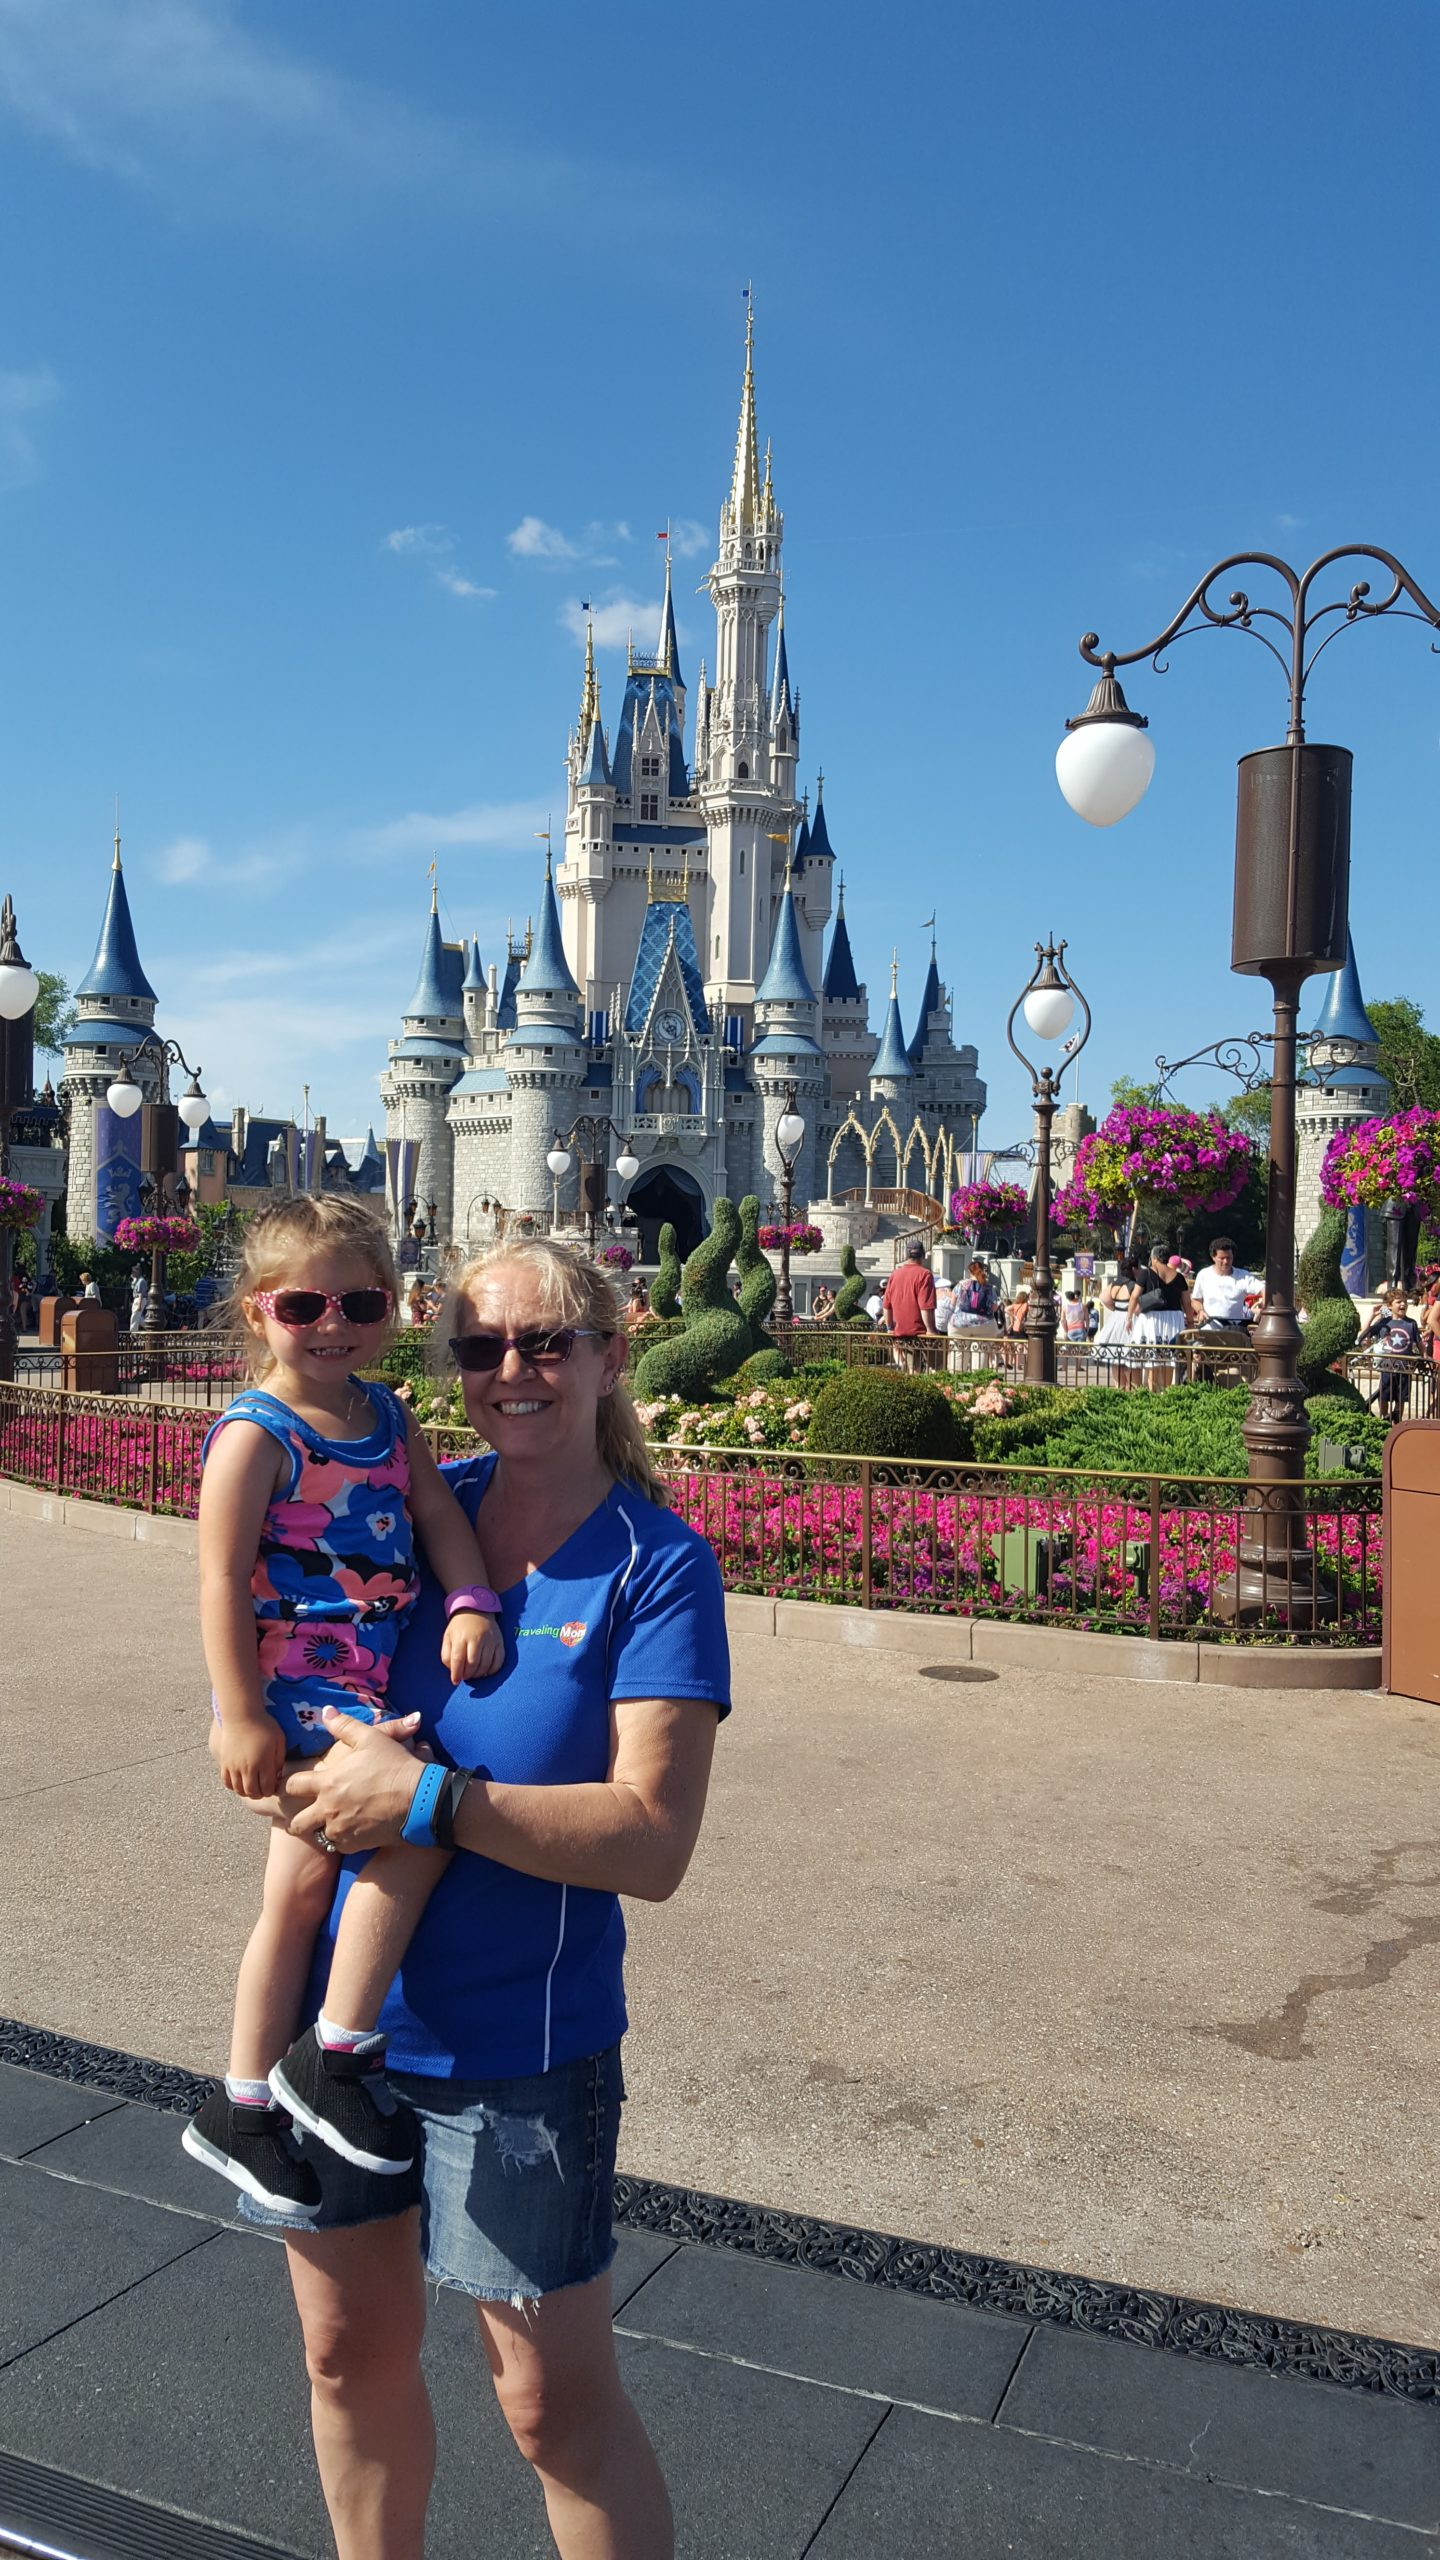 Don't miss the photo opp with Grammie and granddaughter in front of Cinderella's Castle inside Disney's Magic Kingdom.